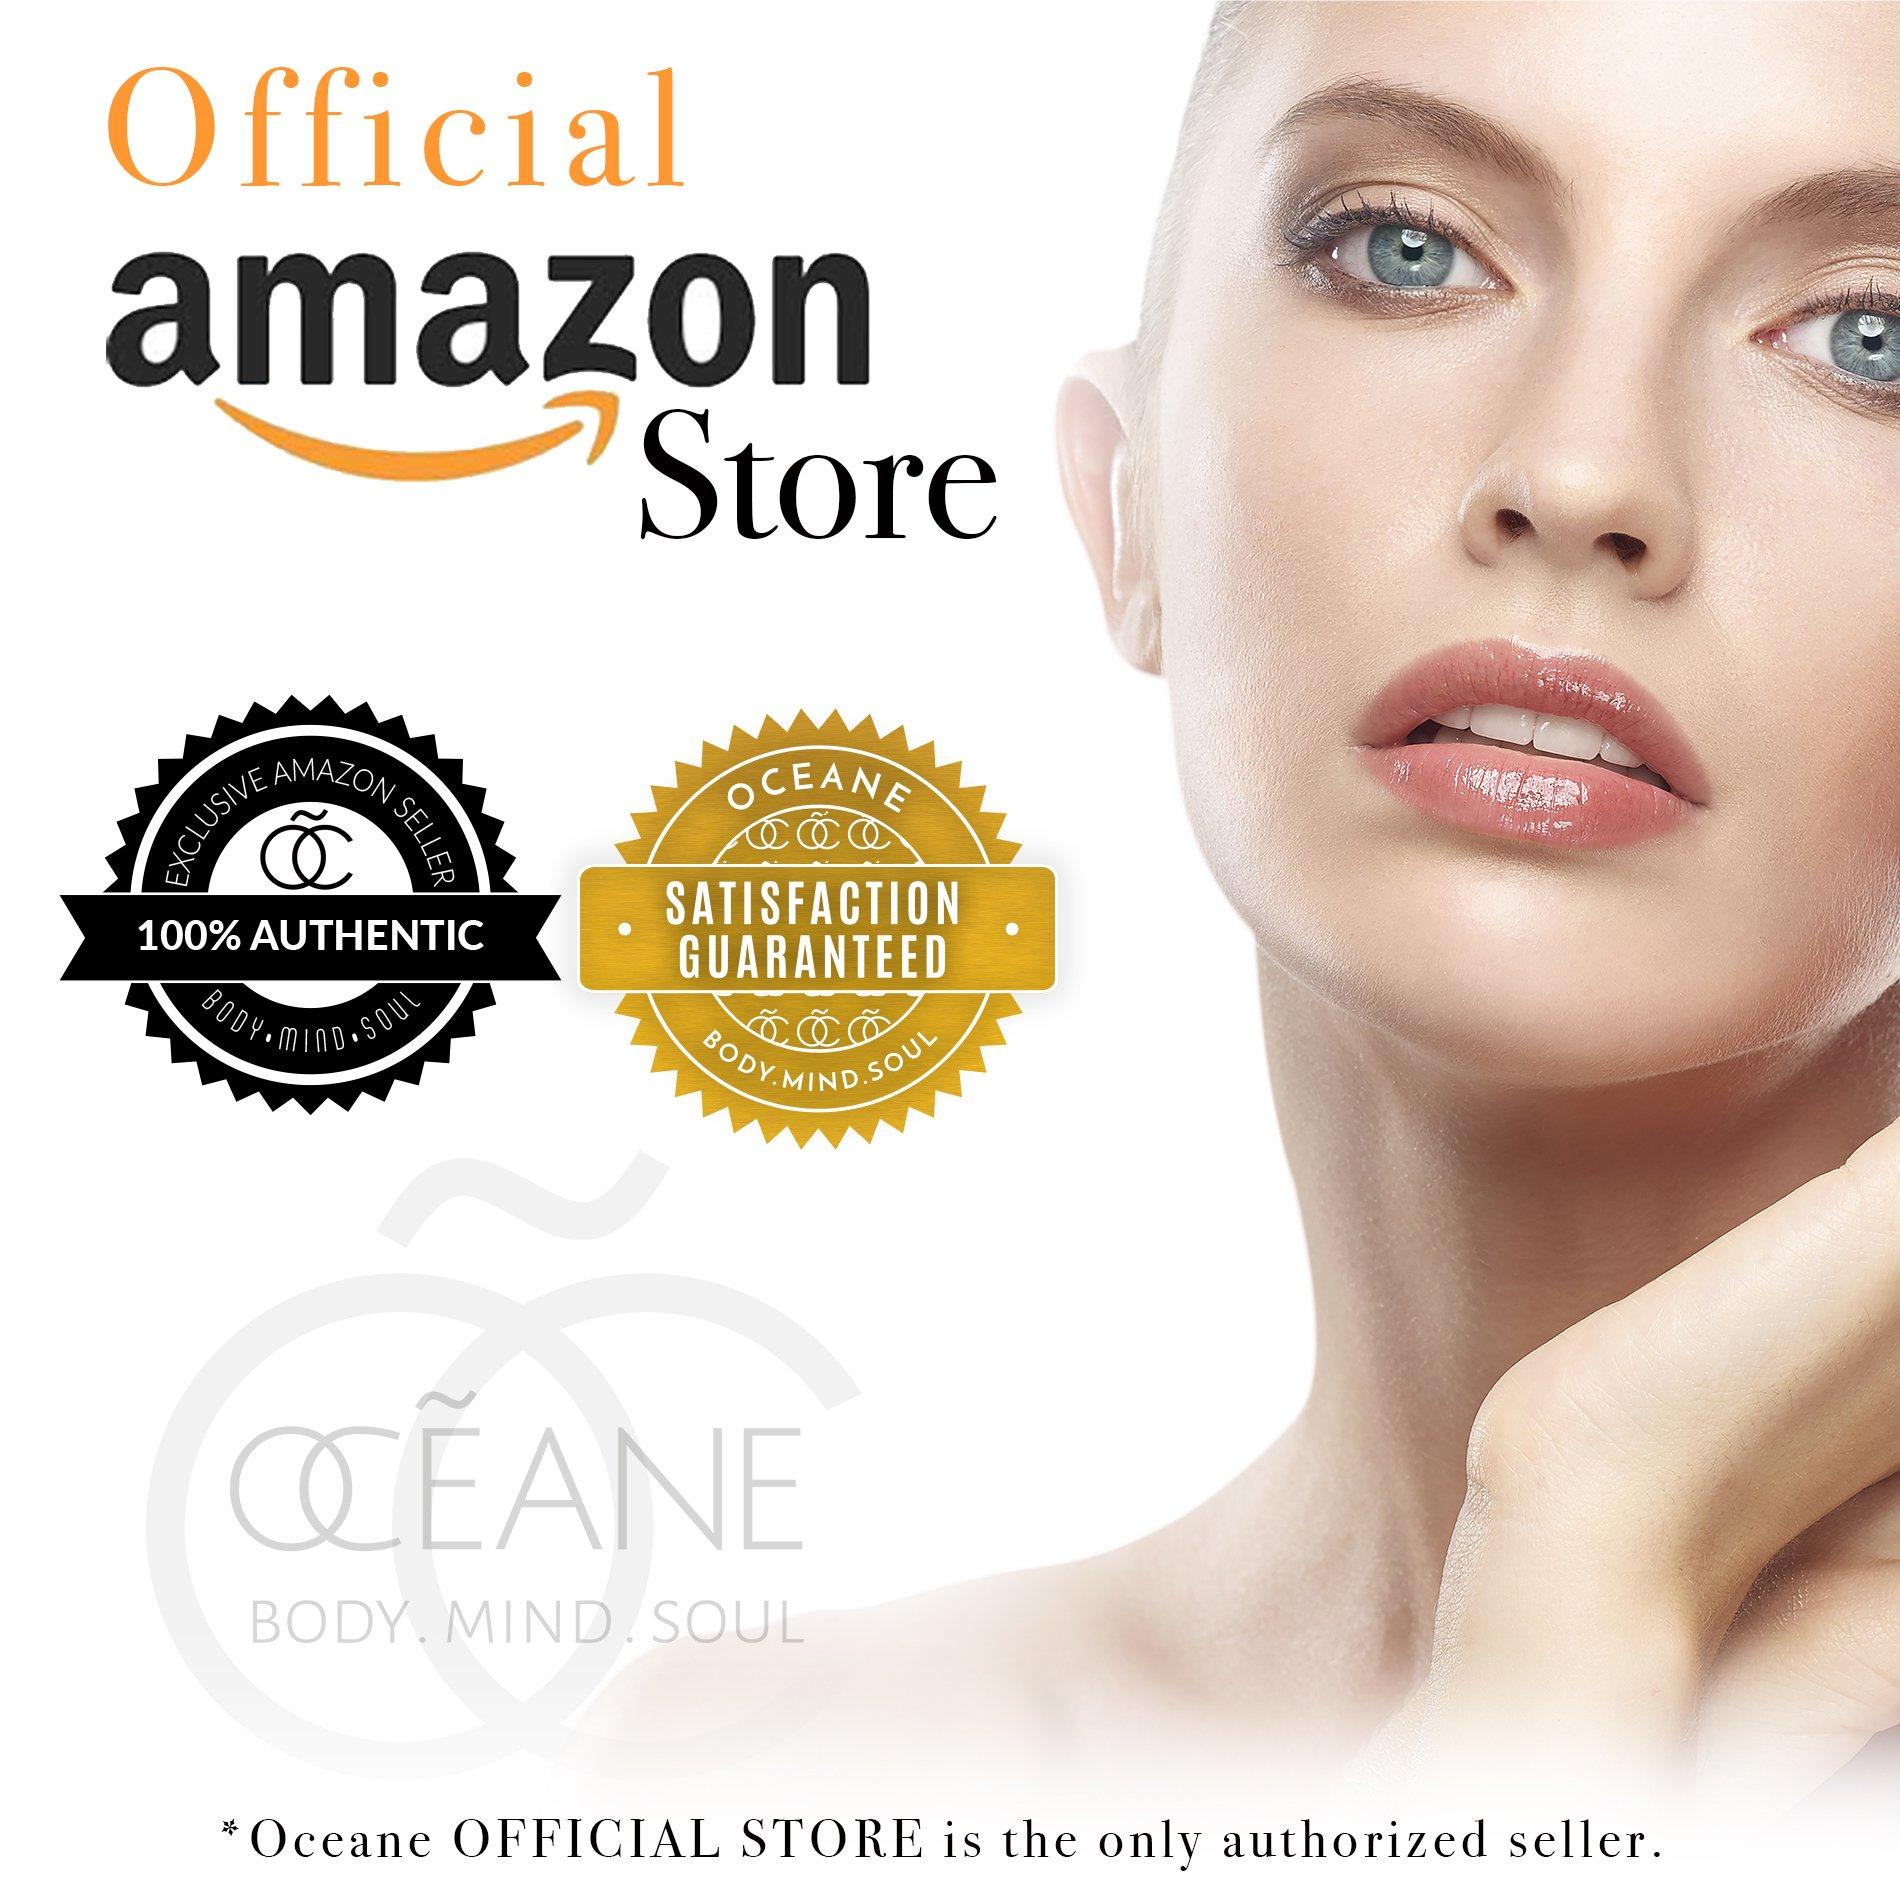 OCEANE Beauty White Pearl Infused Toner, Enriched with Natural Pearl Powder and Marine Plant Stem Cells Beauty System, Age-Defying Tighten Toner OC4